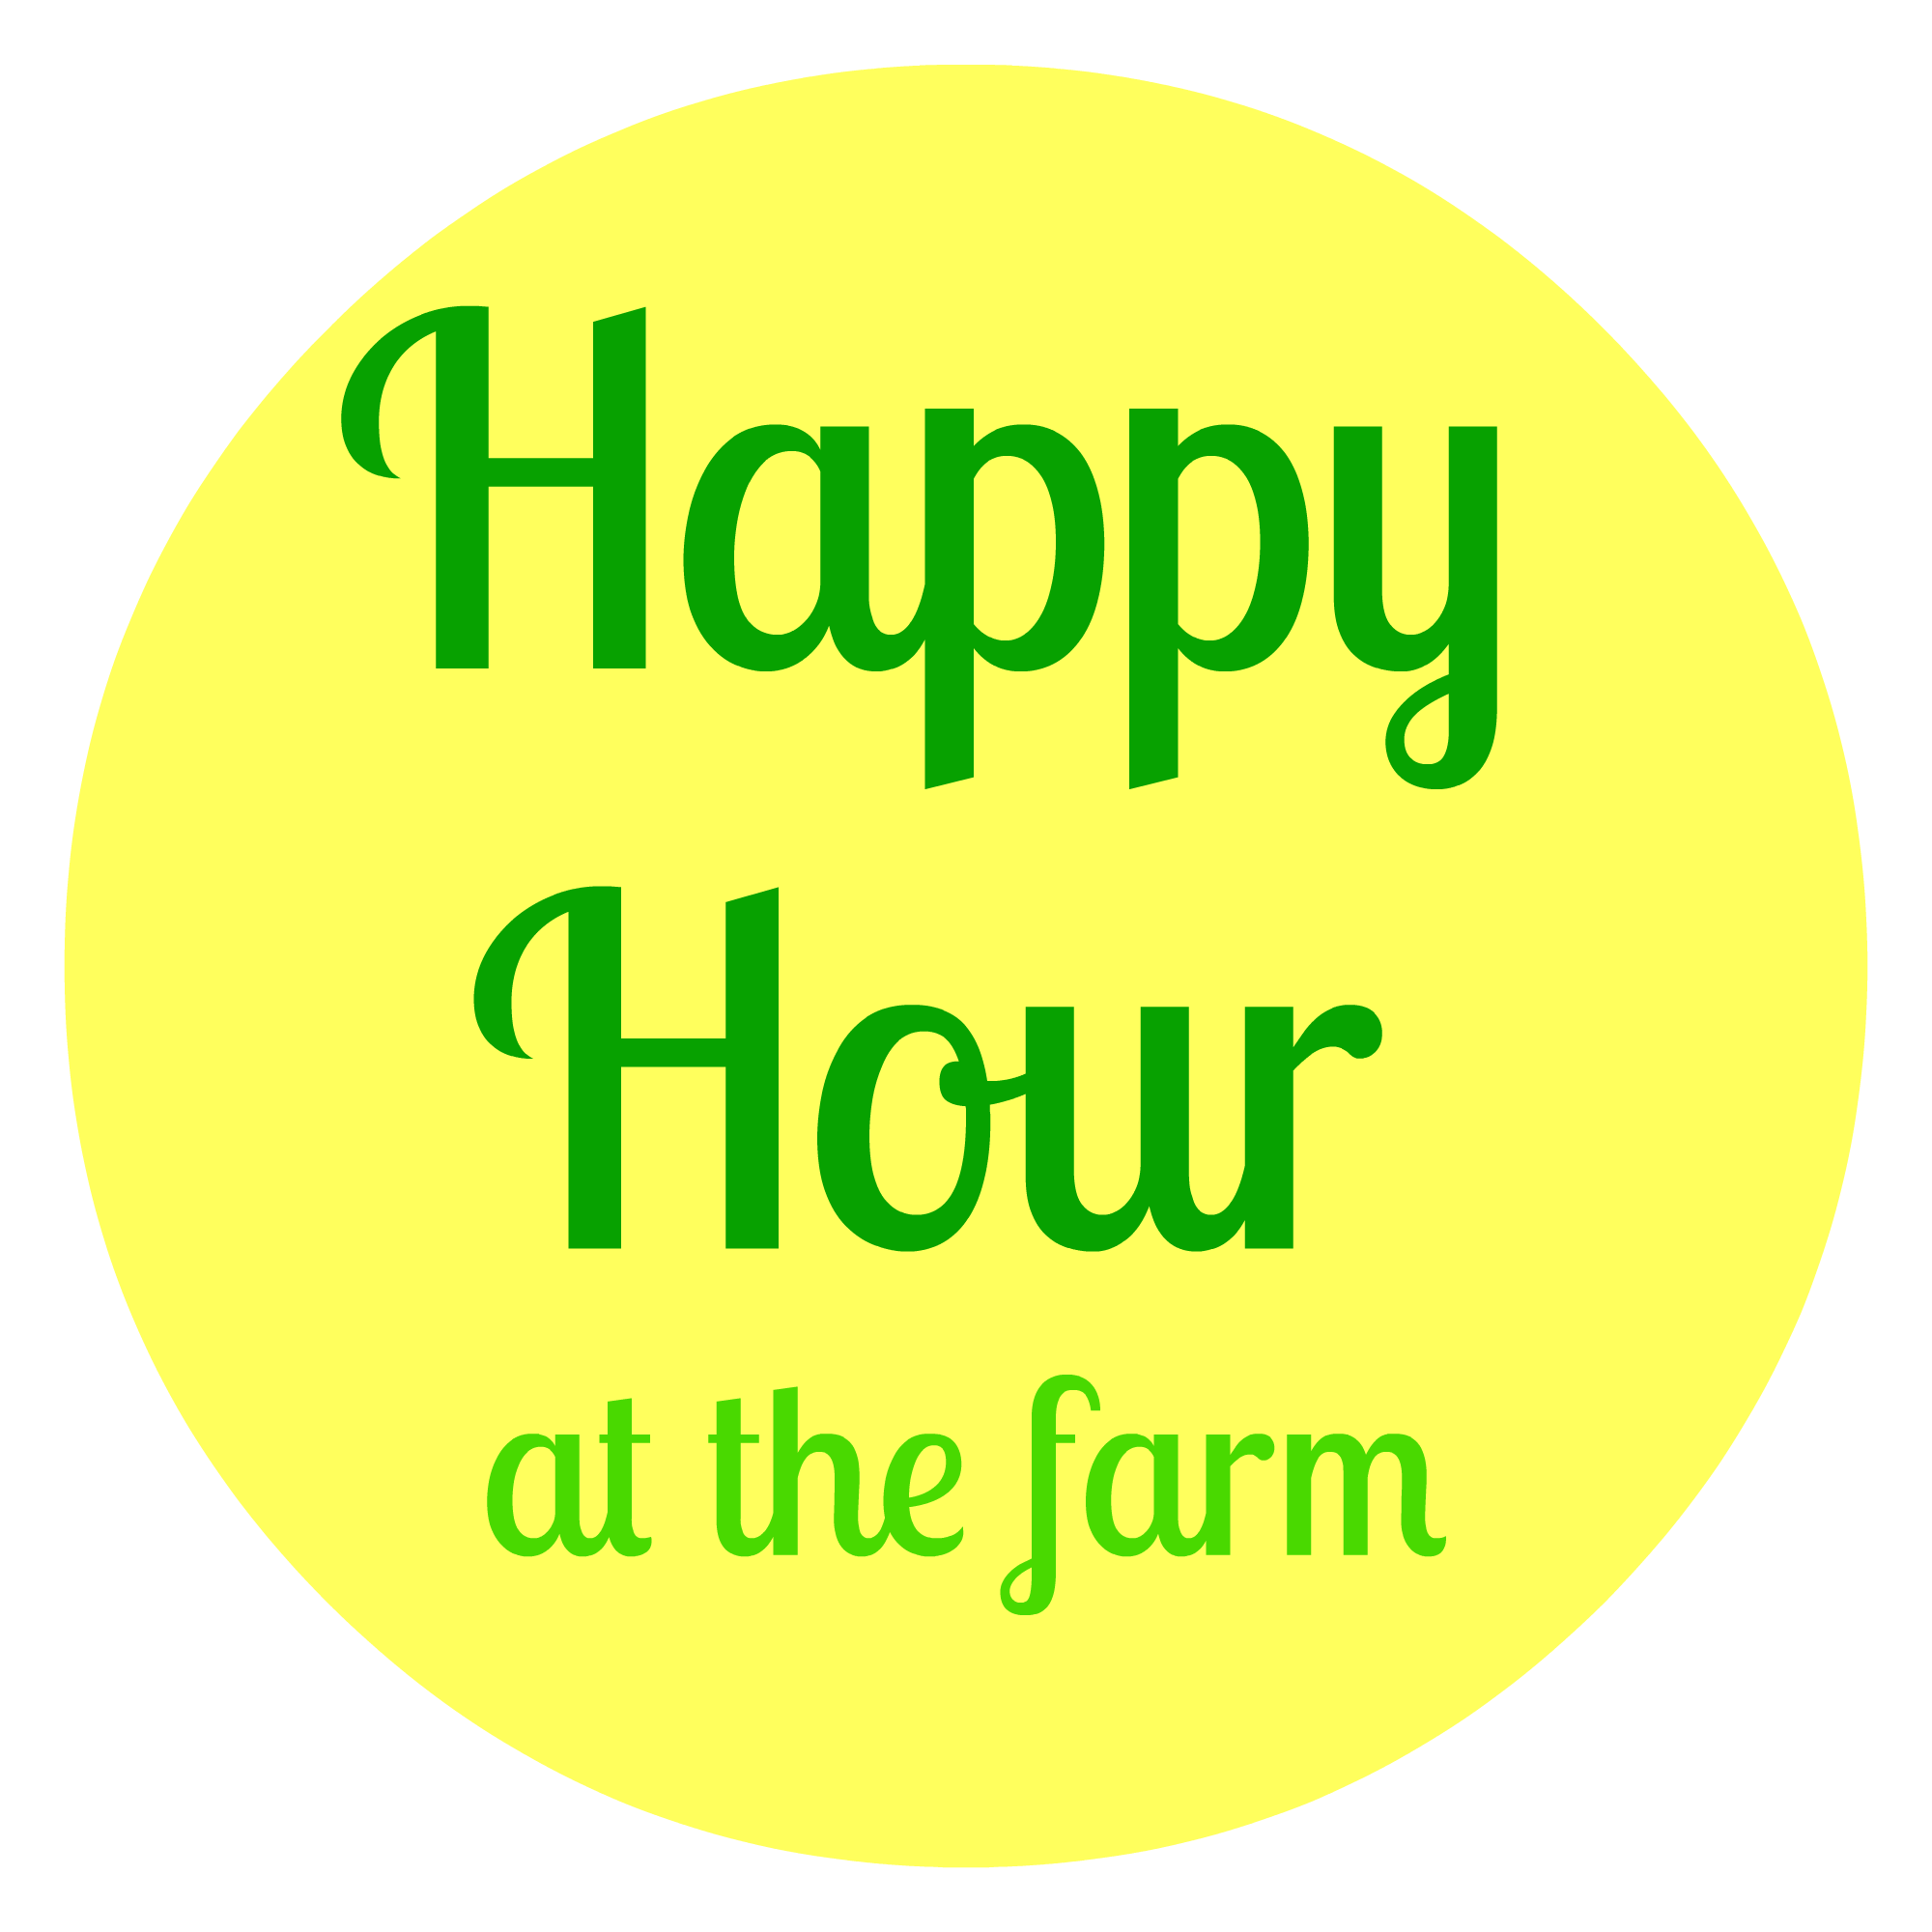 happyhouratthefarm